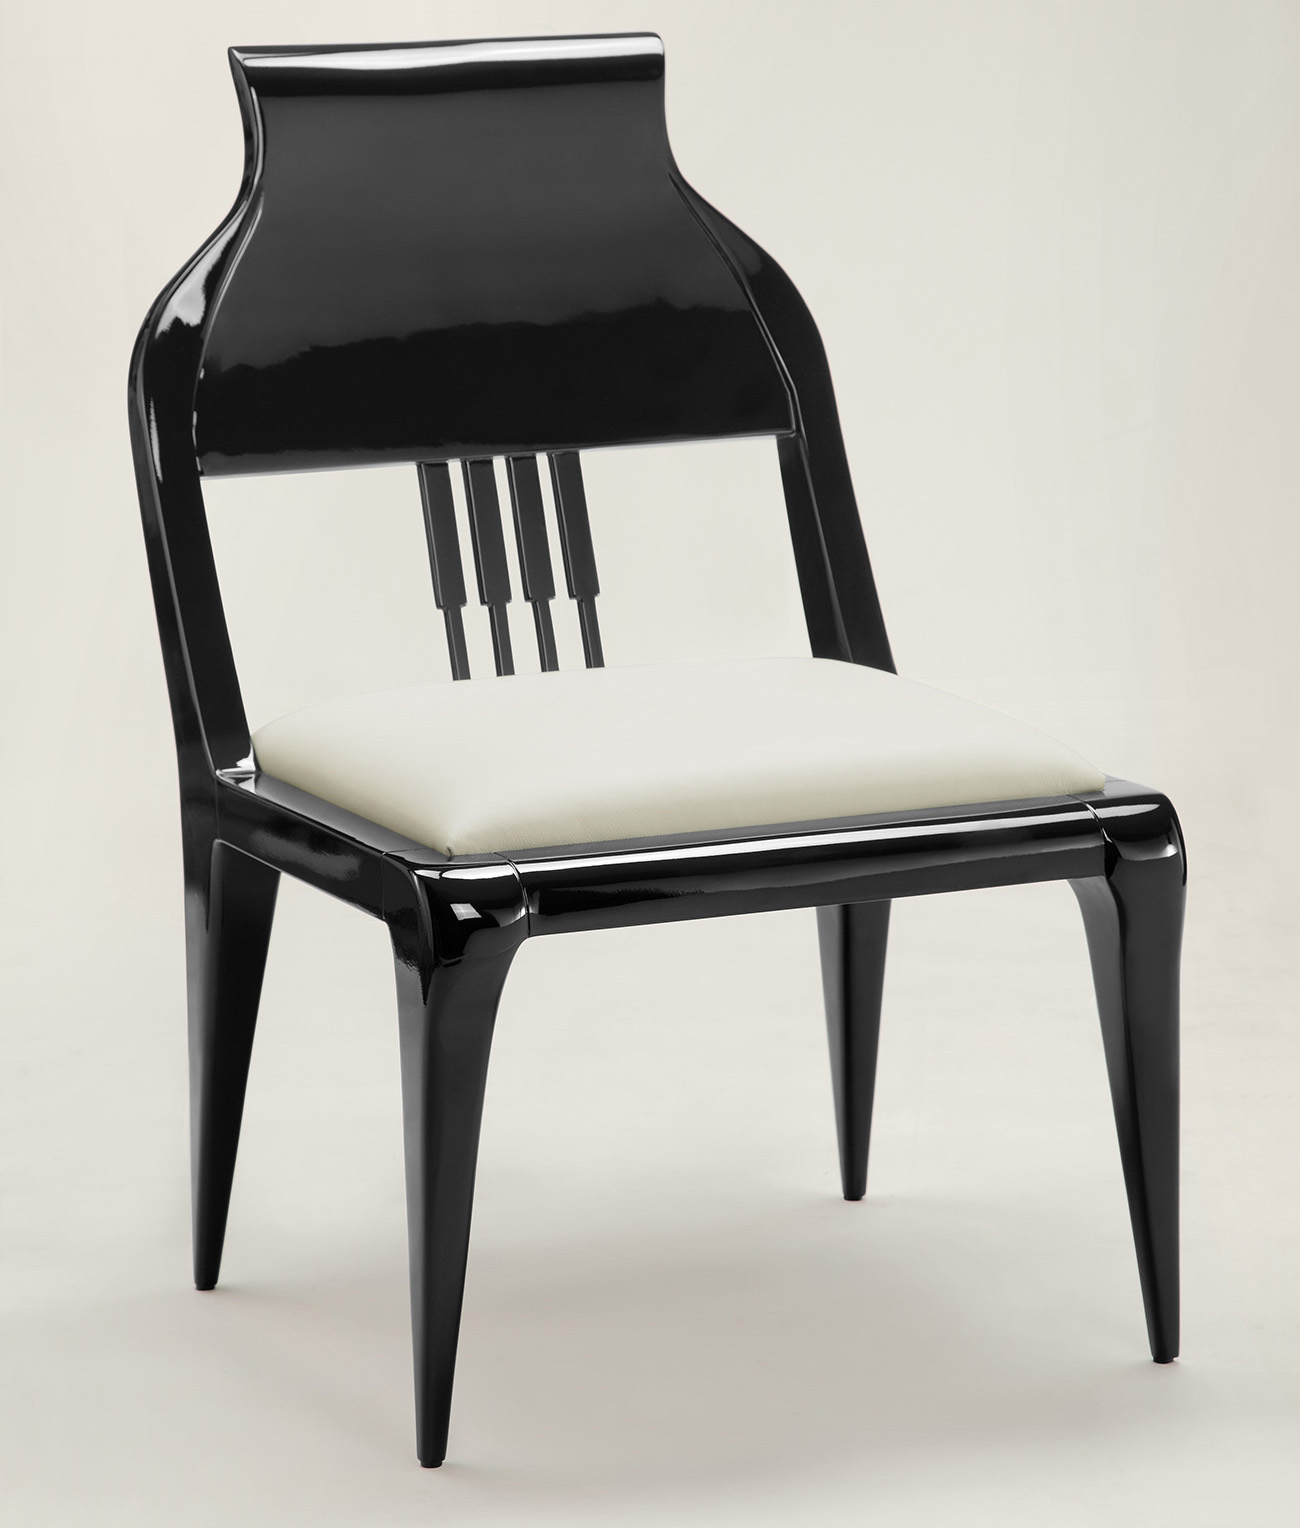 Nocturne Piano Chair